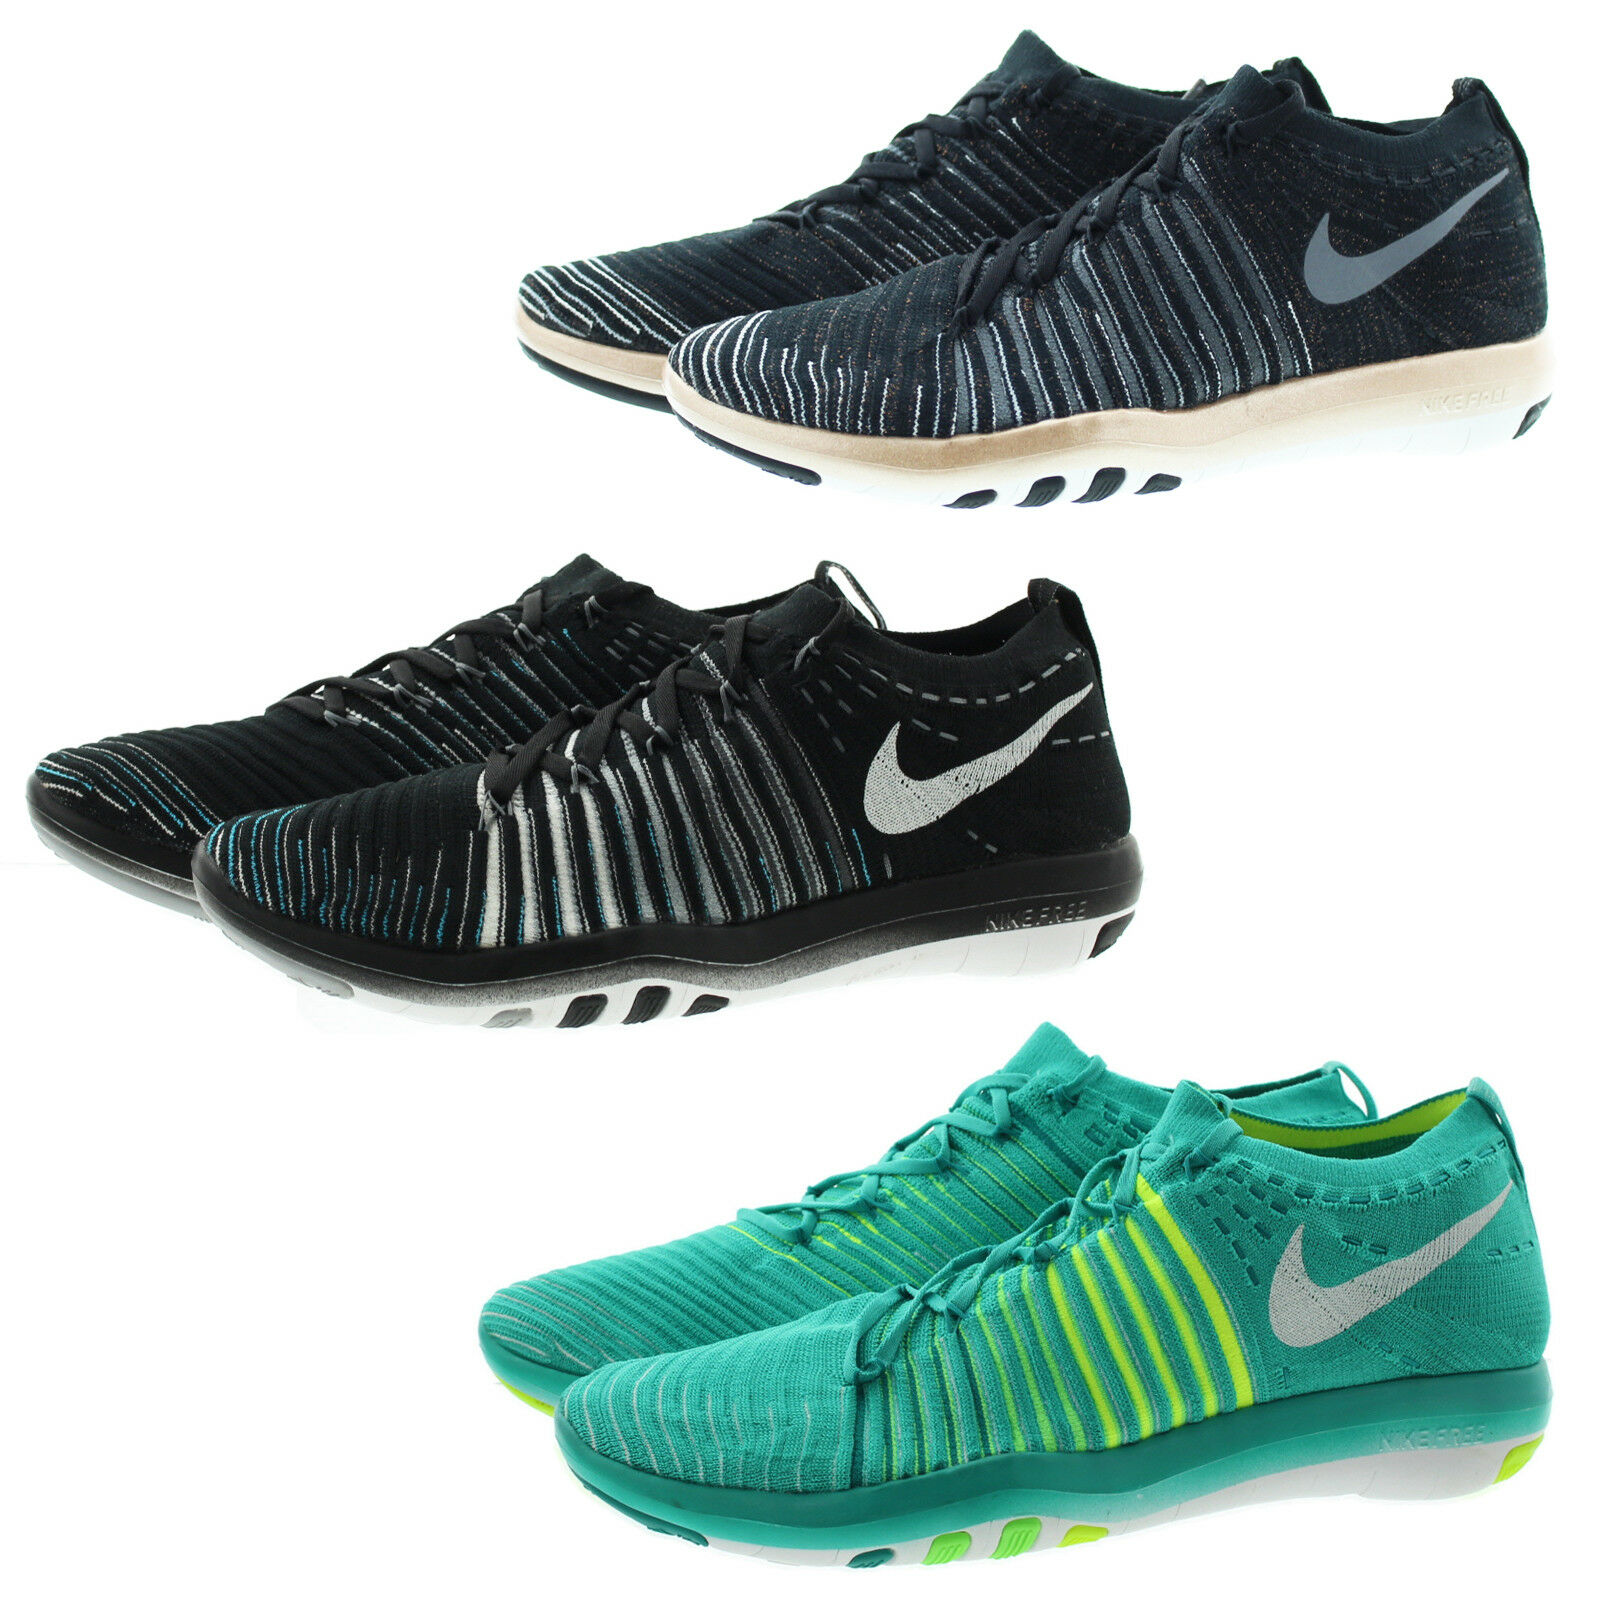 on sale 87e59 92425 Nike 833410 833410 833410 Womens Free Transform Flyknit Mesh Trainer  Running shoes Sneakers df5703